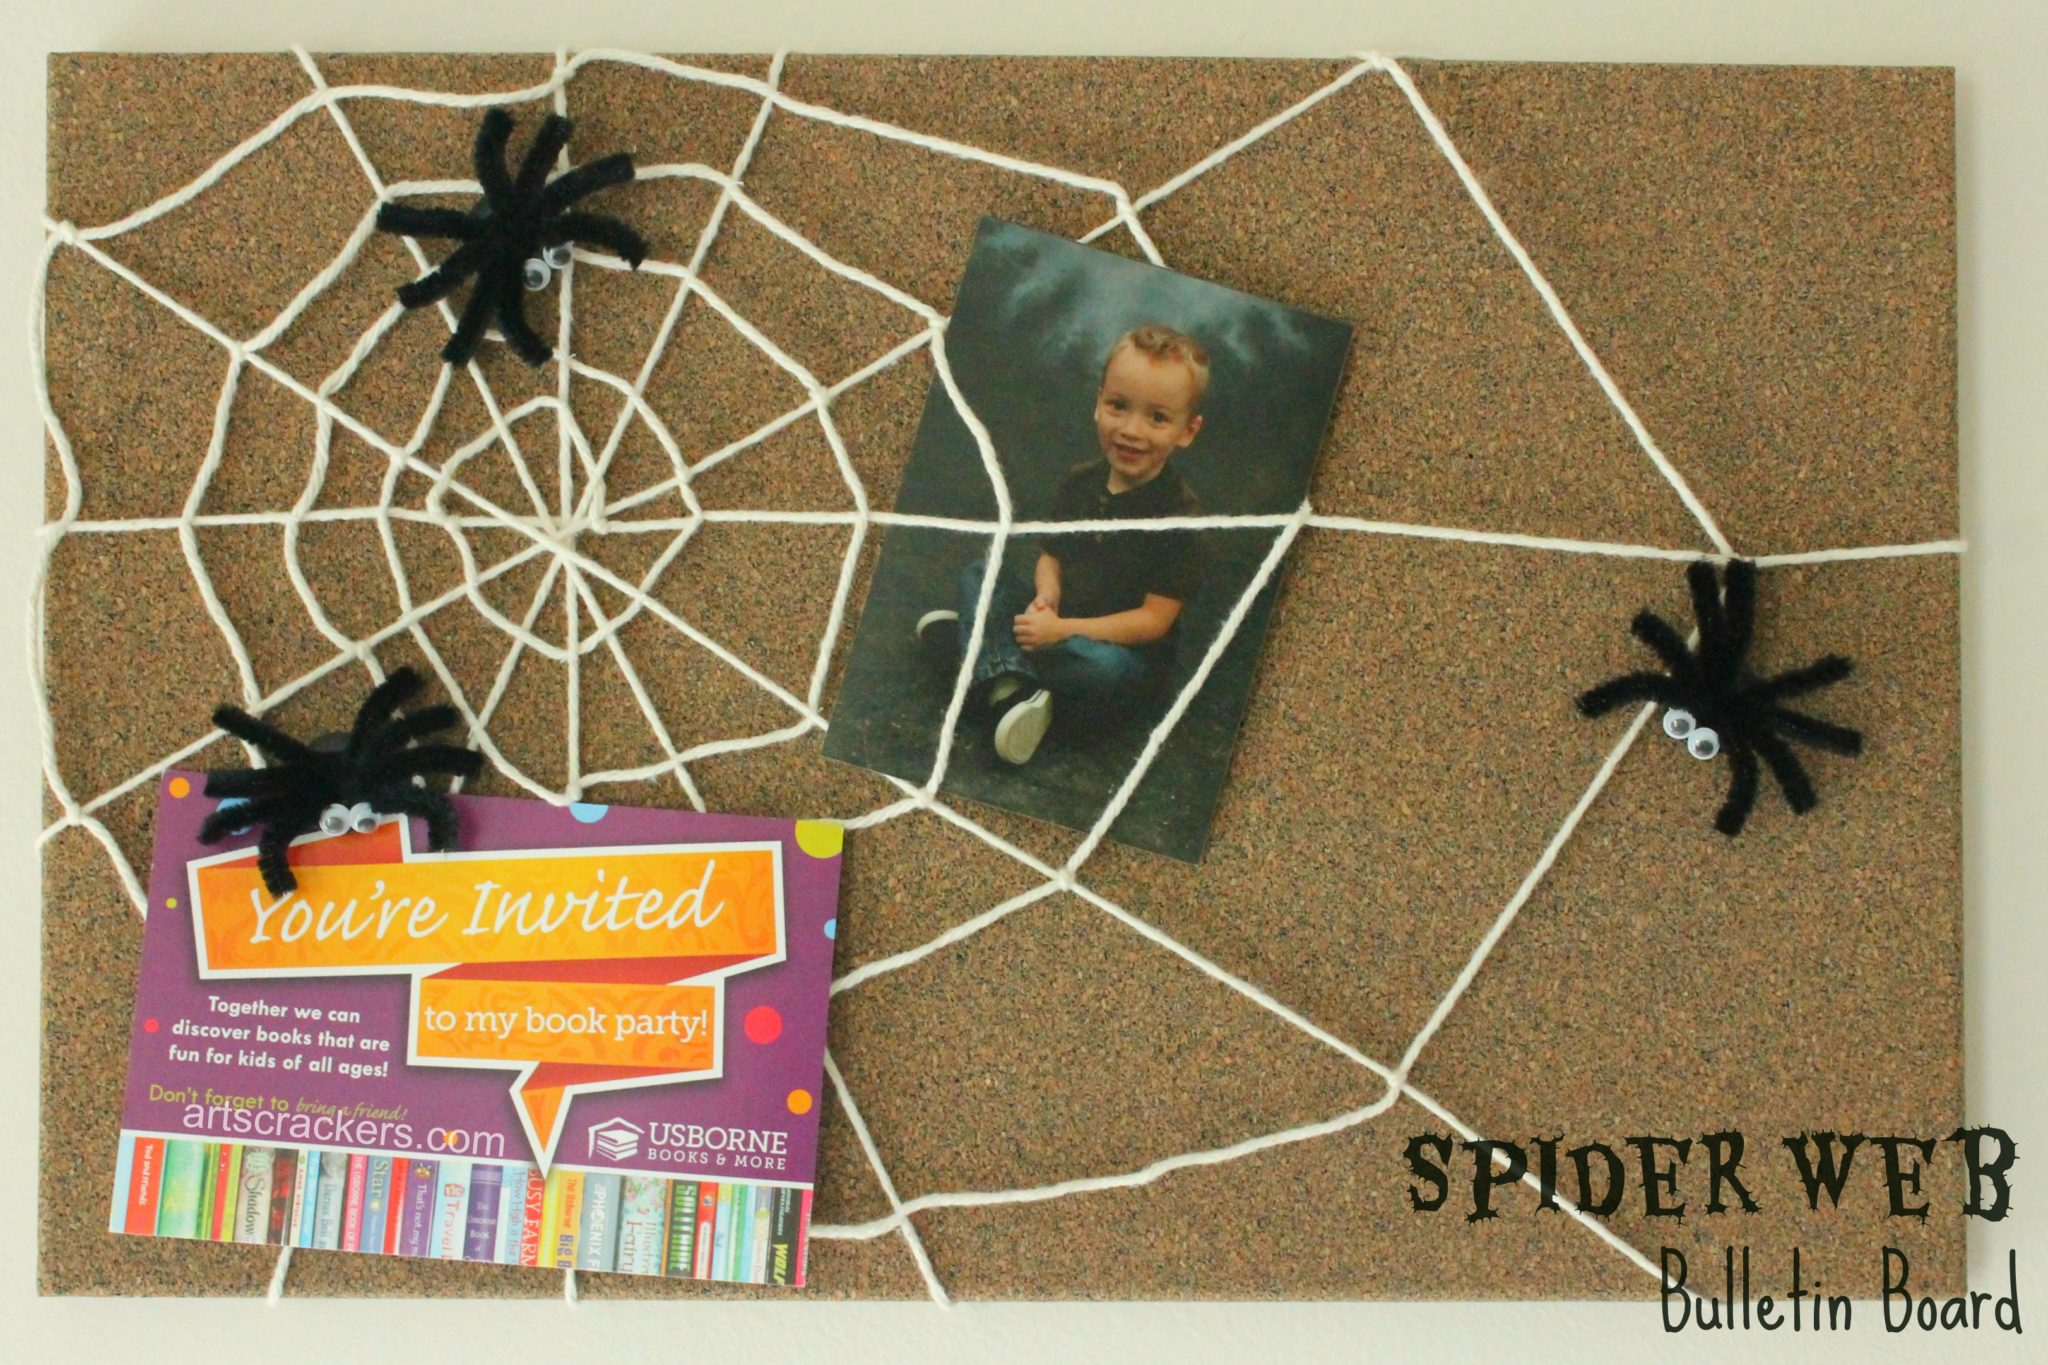 Spider Web Bulletin Board